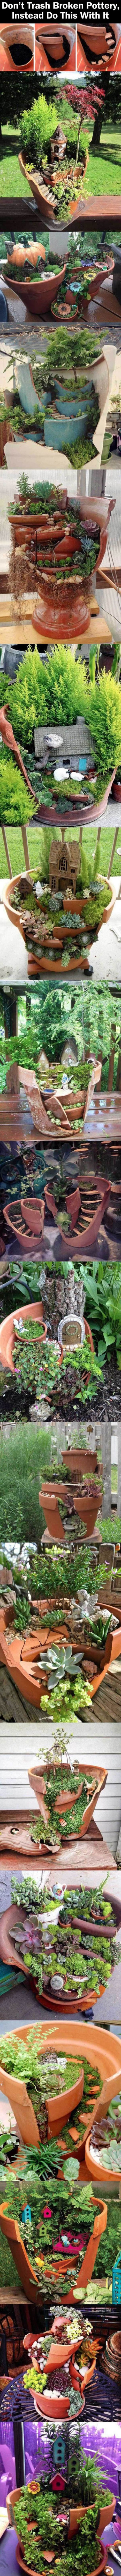 Don't Throw Away Broken Pottery, Instead Do THIS! spring flower home garden diy gardening crafts garden ideas life hacks home  crafts good to know